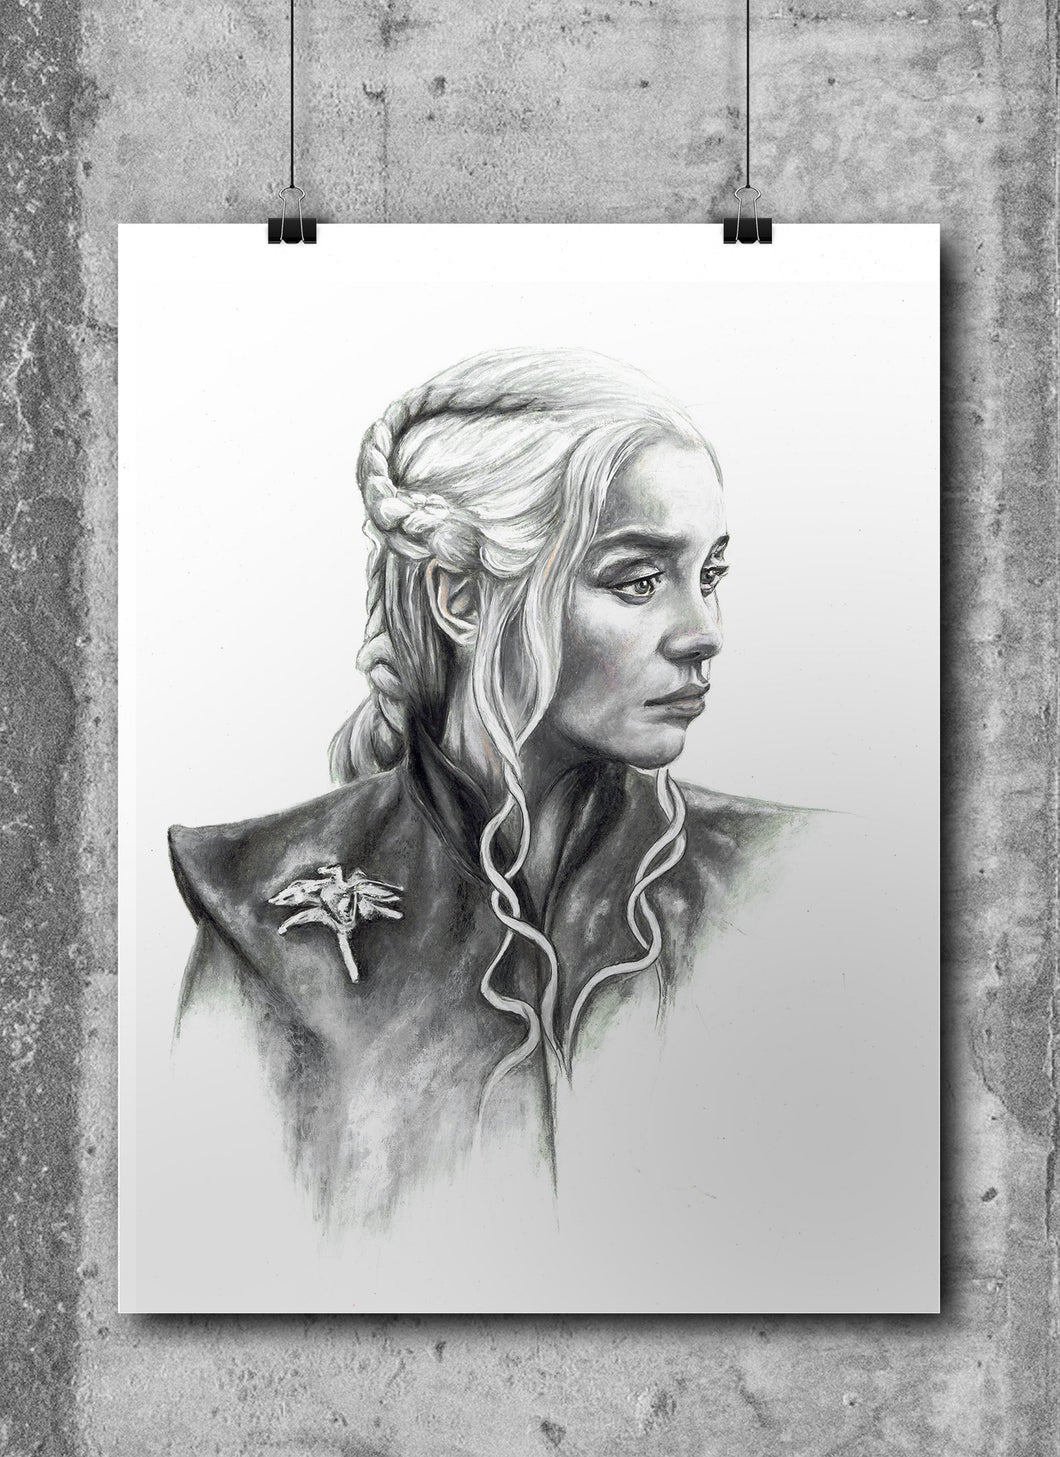 Daenerys Targaryen/Game of Thrones/Limited Edition/Hand Drawing by Wil Shrike